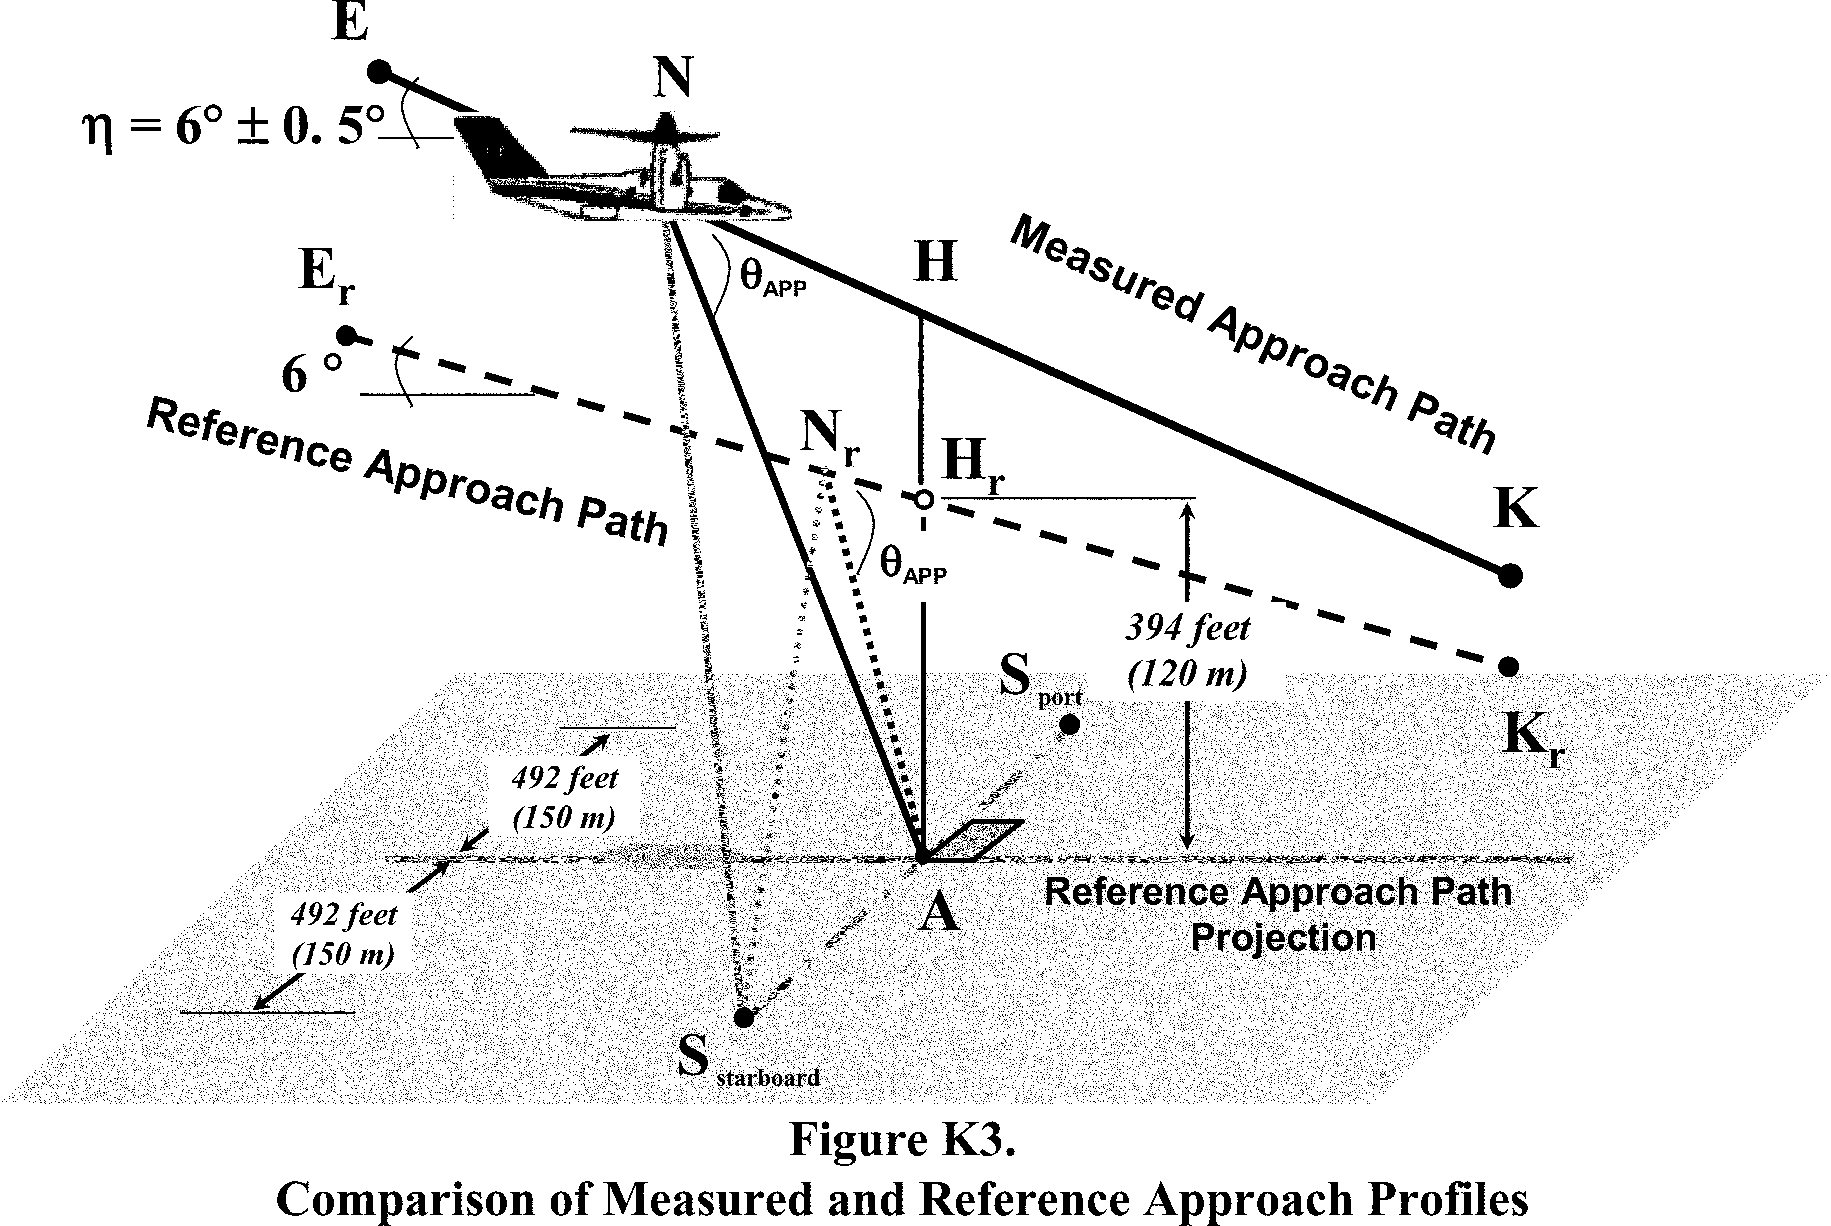 Graphic of (2) Two sideline noise measurement points, designated as S(starboard) and S(port), are located on the ground perpendicular to and symmetrically stationed at 492 feet (150 m) on each side of the approach reference flight path. The measurement points bisect the centerline flight path reference point A.